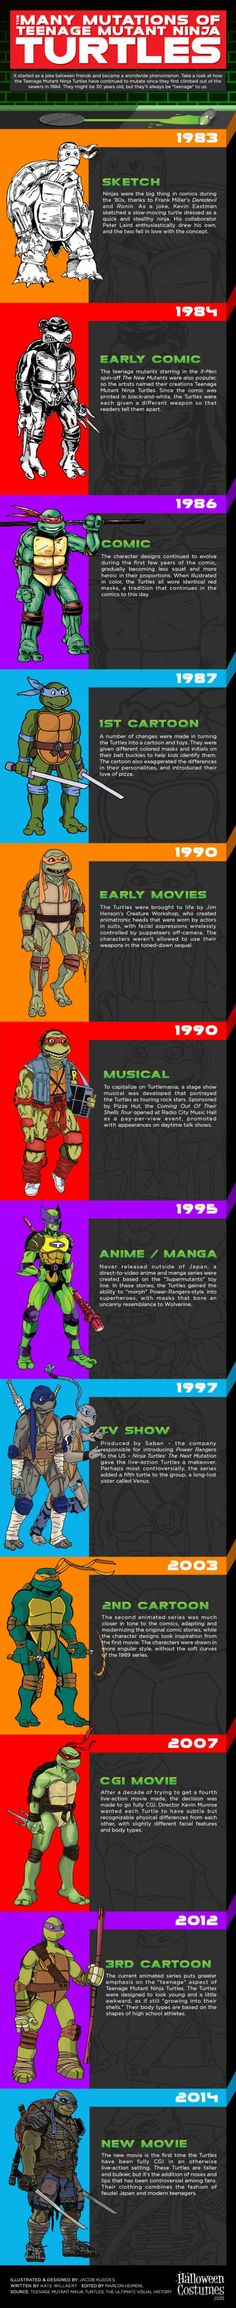 all hands in! TMNT | TMNT | Pinterest